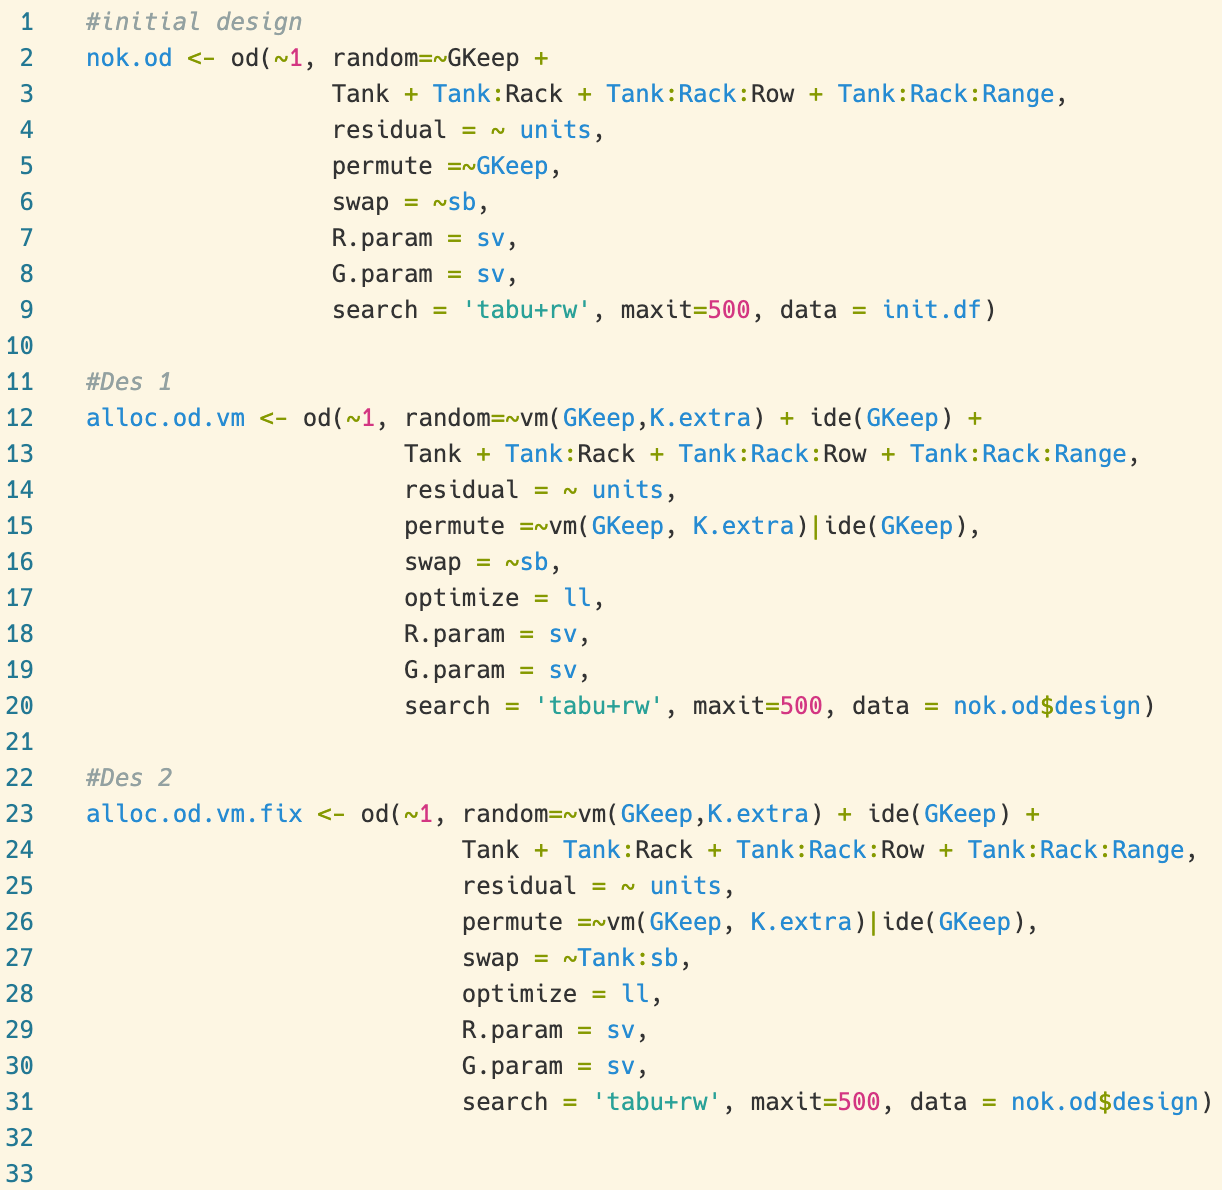 example of OD code in R